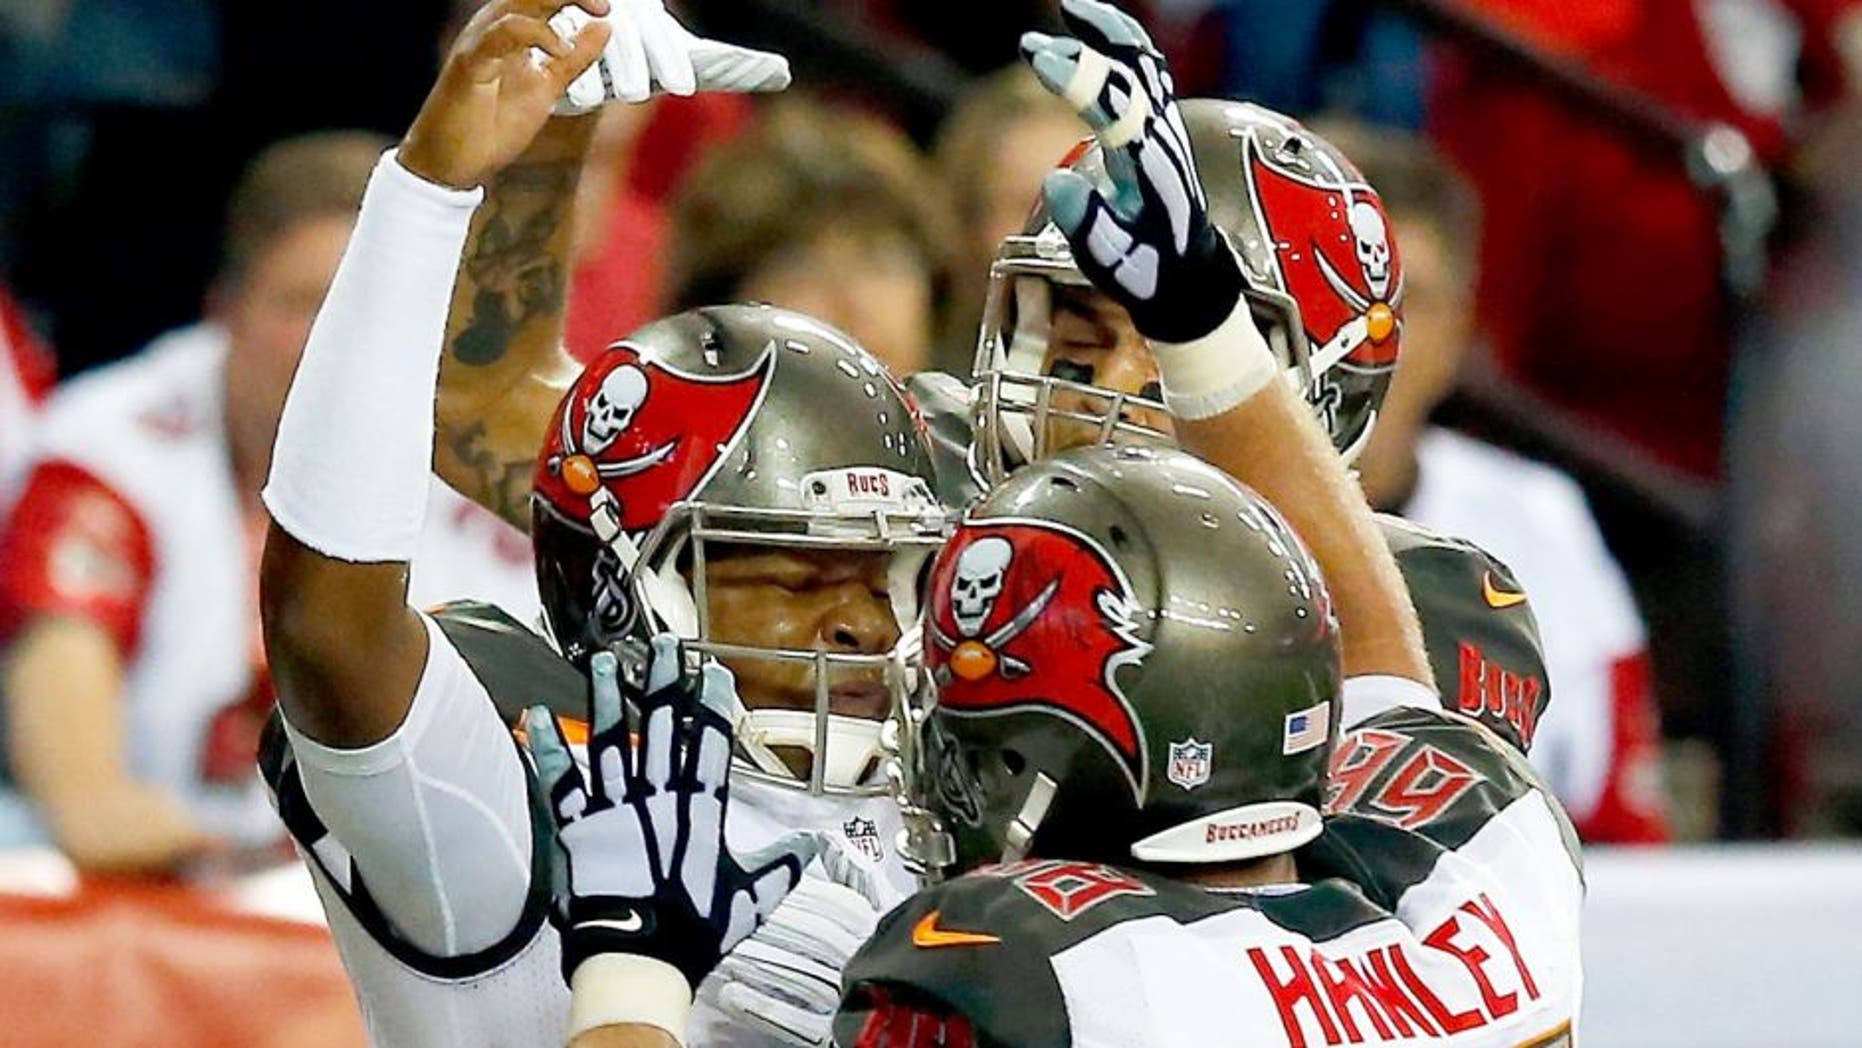 ATLANTA, GA - NOVEMBER 01: Jameis Winston #3 of the Tampa Bay Buccaneers celebrates a touchdown with Joe Hawley #68 of the Tampa Bay Buccaneers during the second half against the Atlanta Falcons at the Georgia Dome on November 1, 2015 in Atlanta, Georgia. (Photo by Kevin C. Cox/Getty Images)